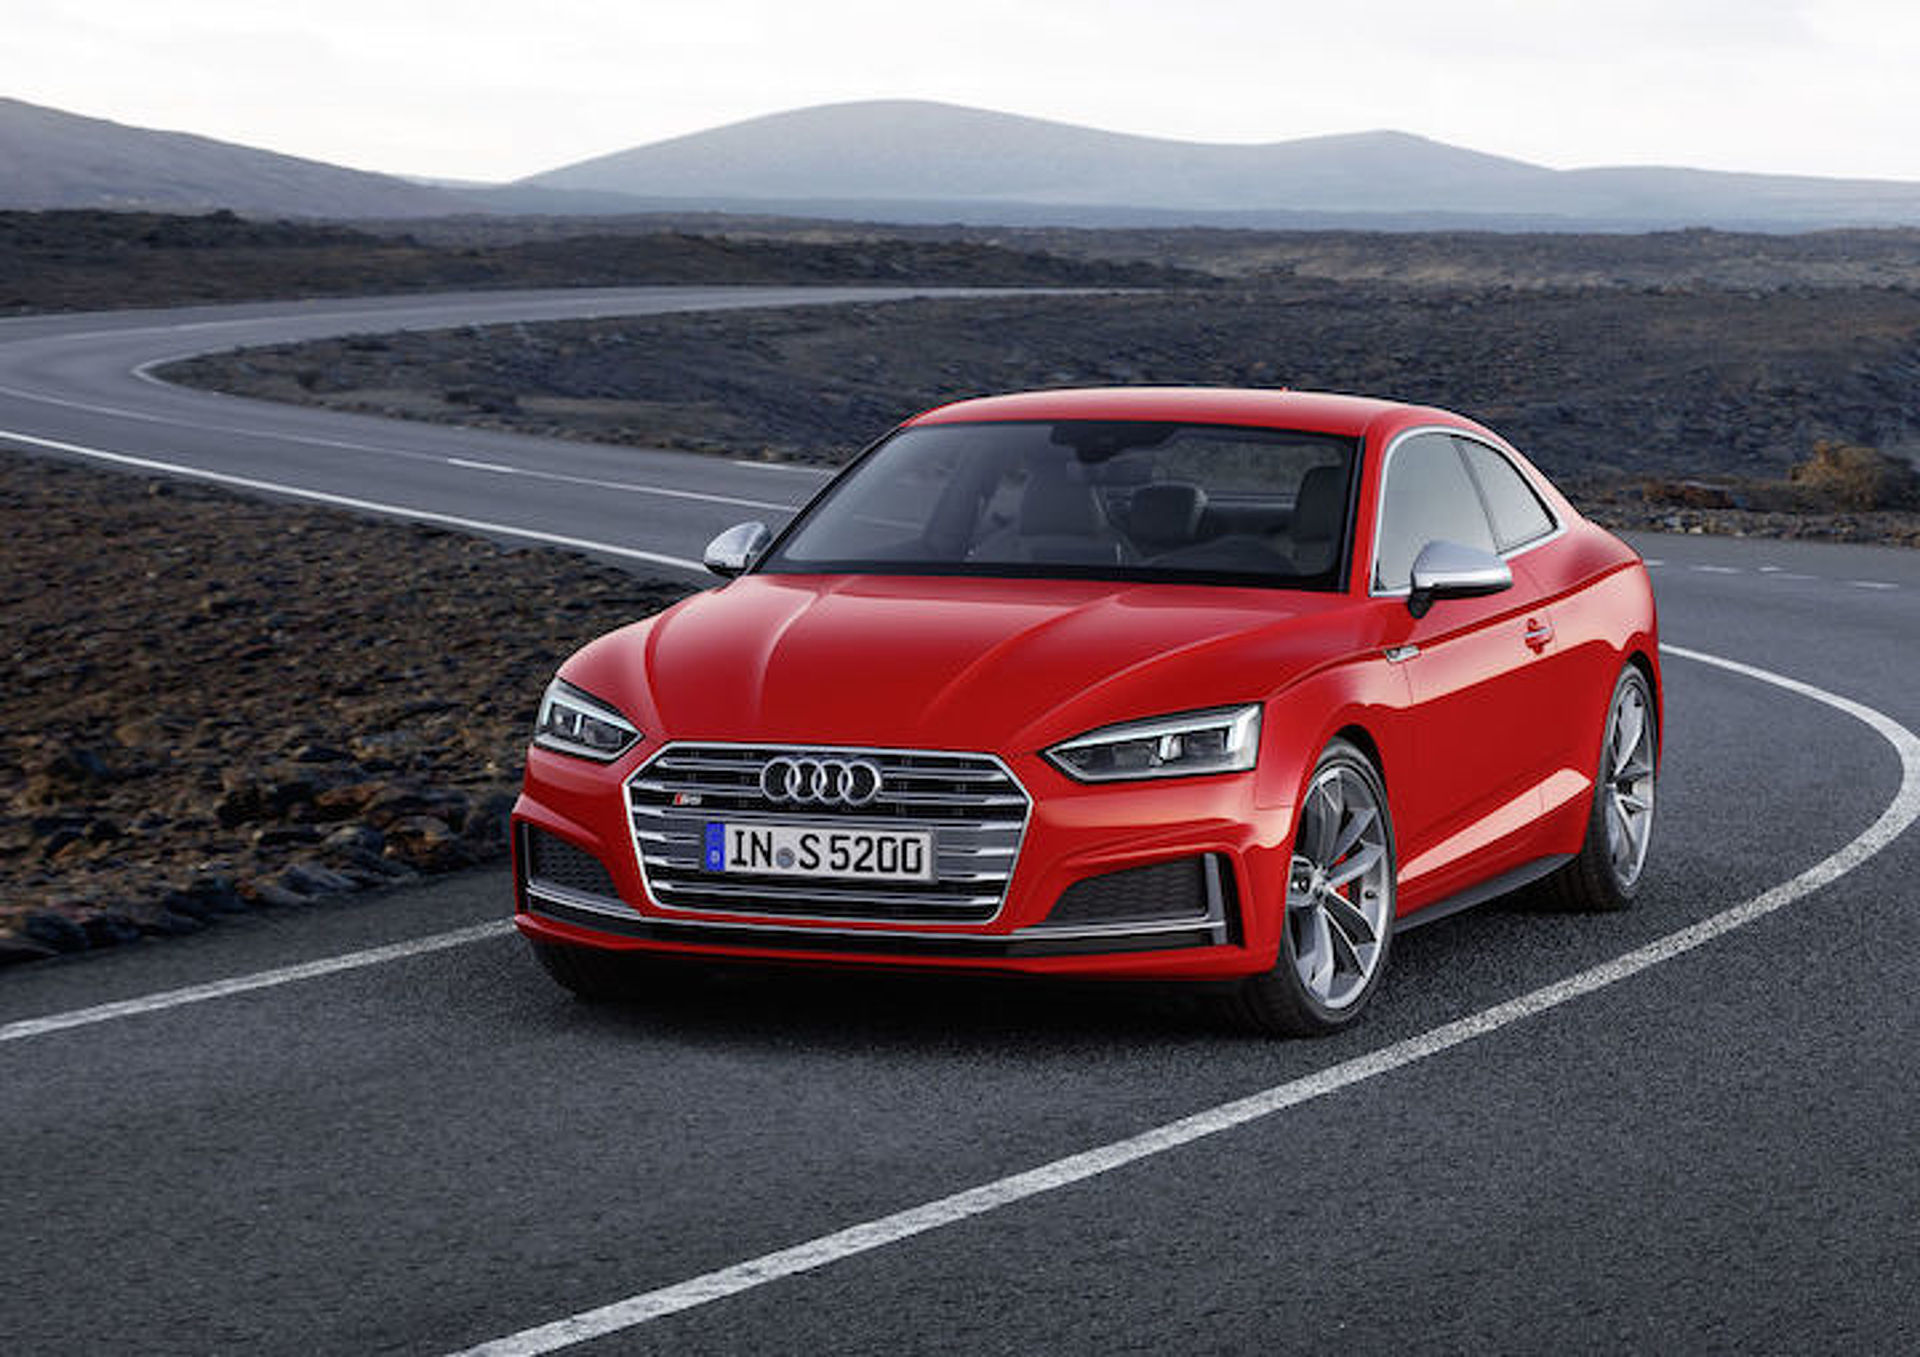 New Audi S5 Gets Just the Right Amount of Changes